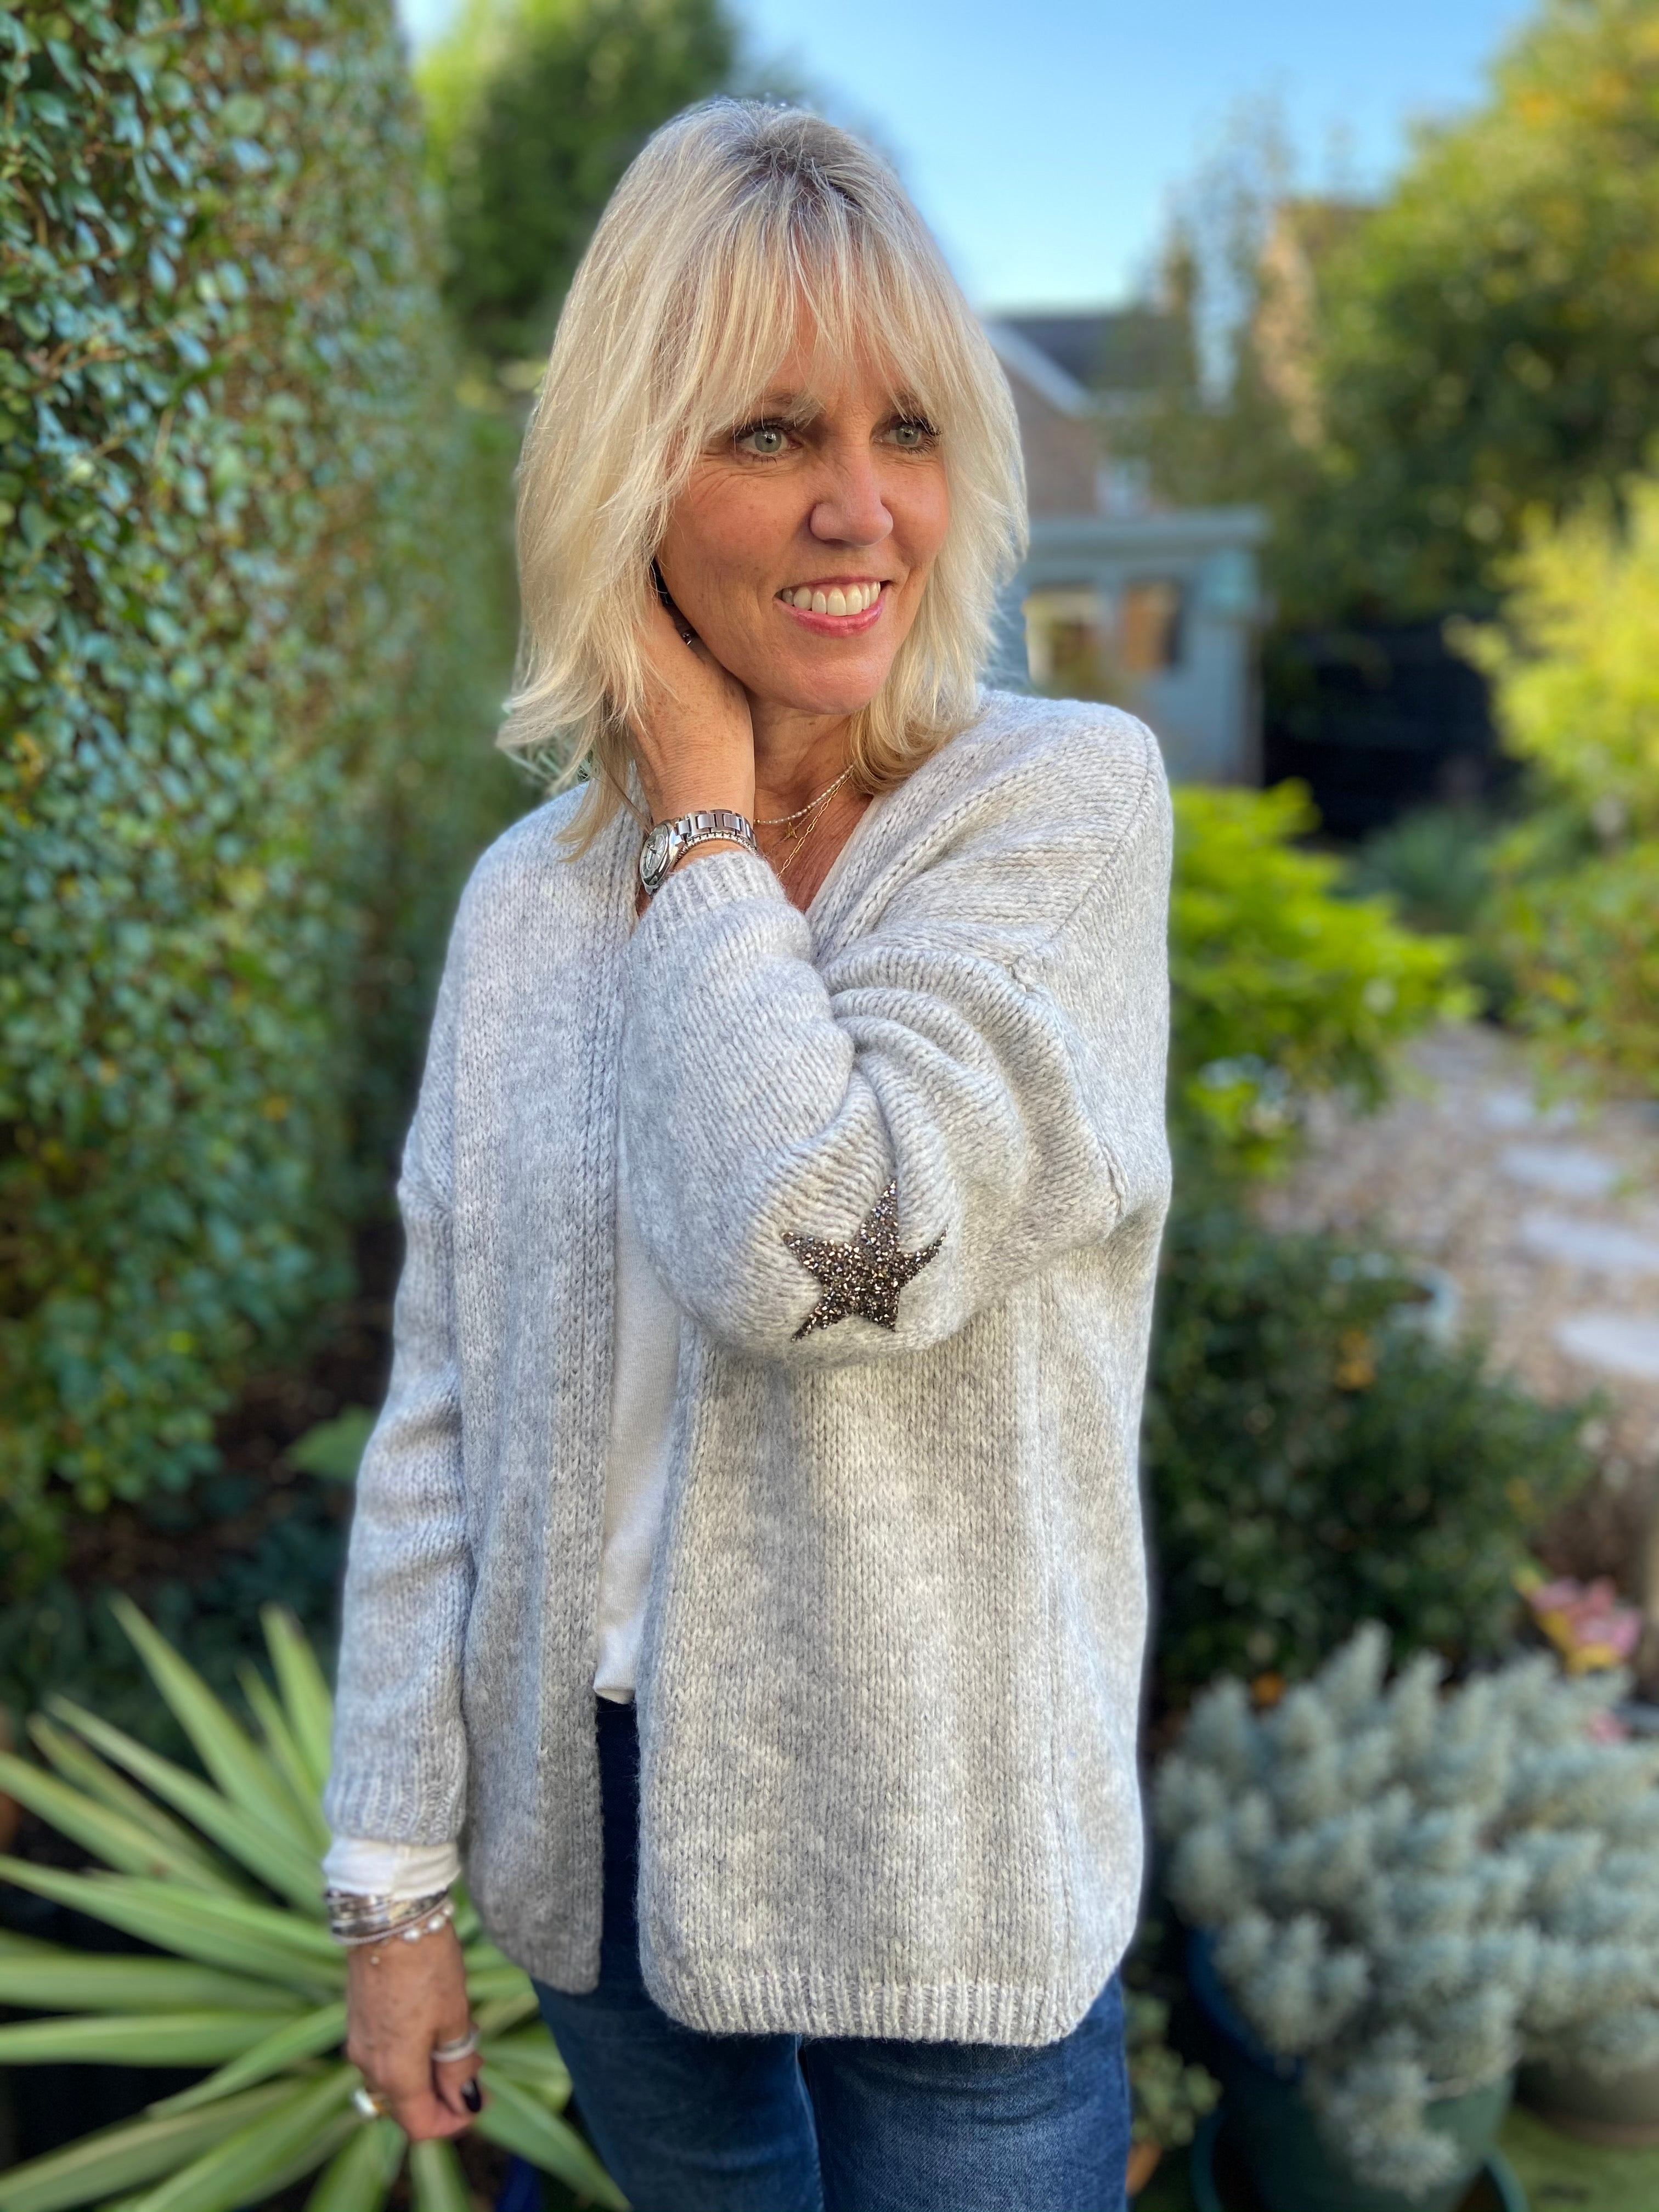 Cardi with Elbow Stars in Silvery Grey